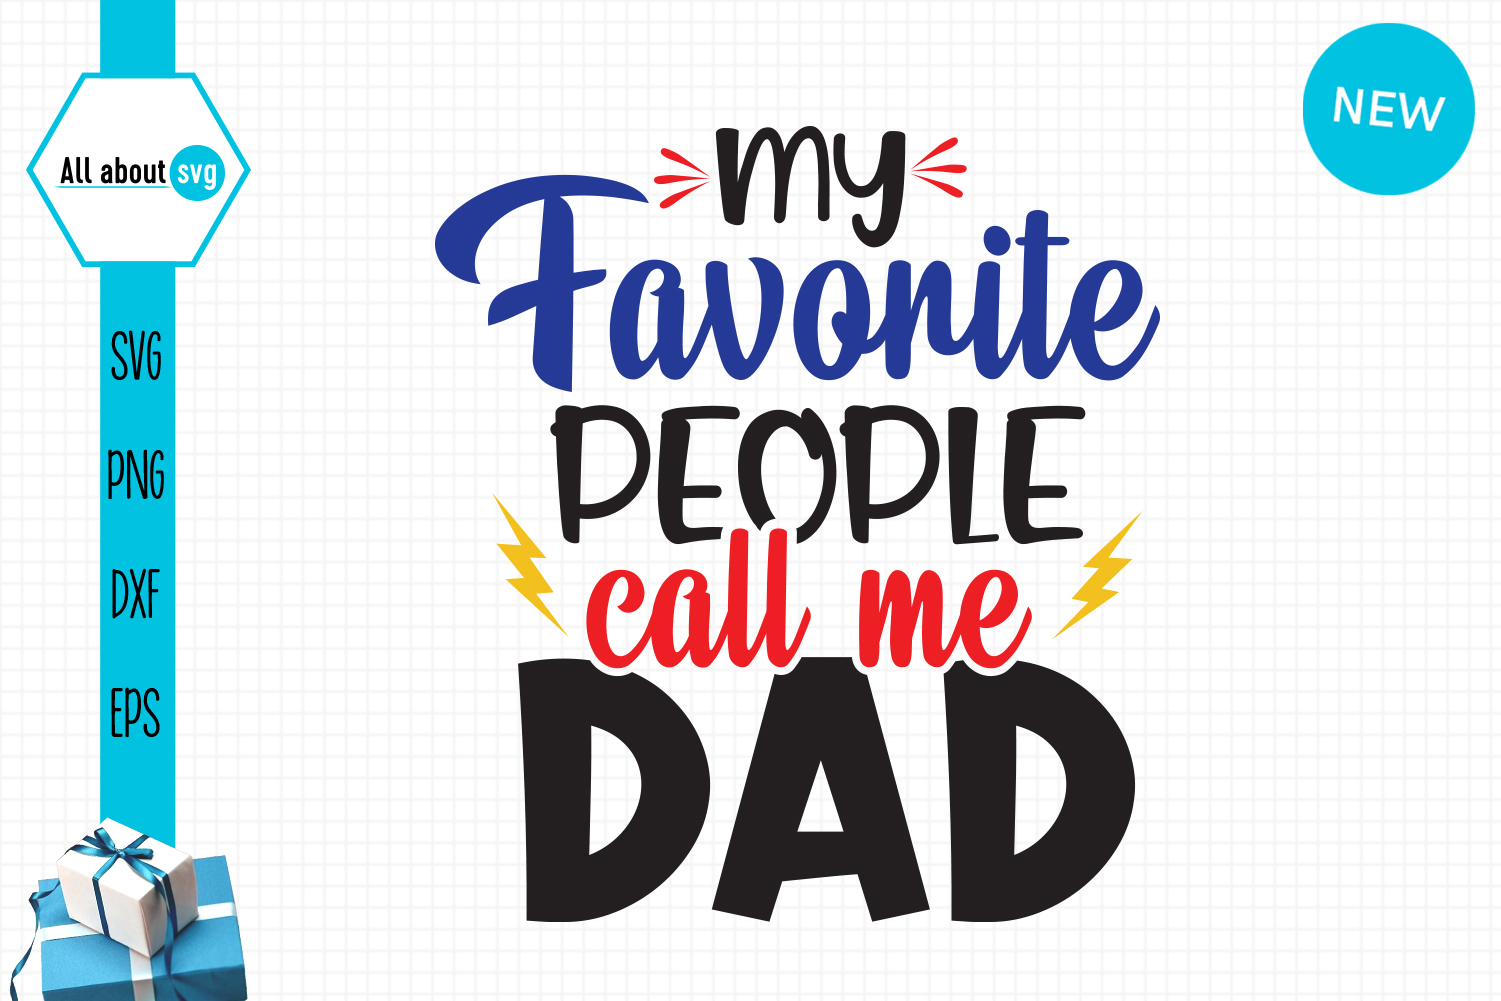 Download Free Favorite People Call Me Dad Graphic By All About Svg Creative Fabrica for Cricut Explore, Silhouette and other cutting machines.